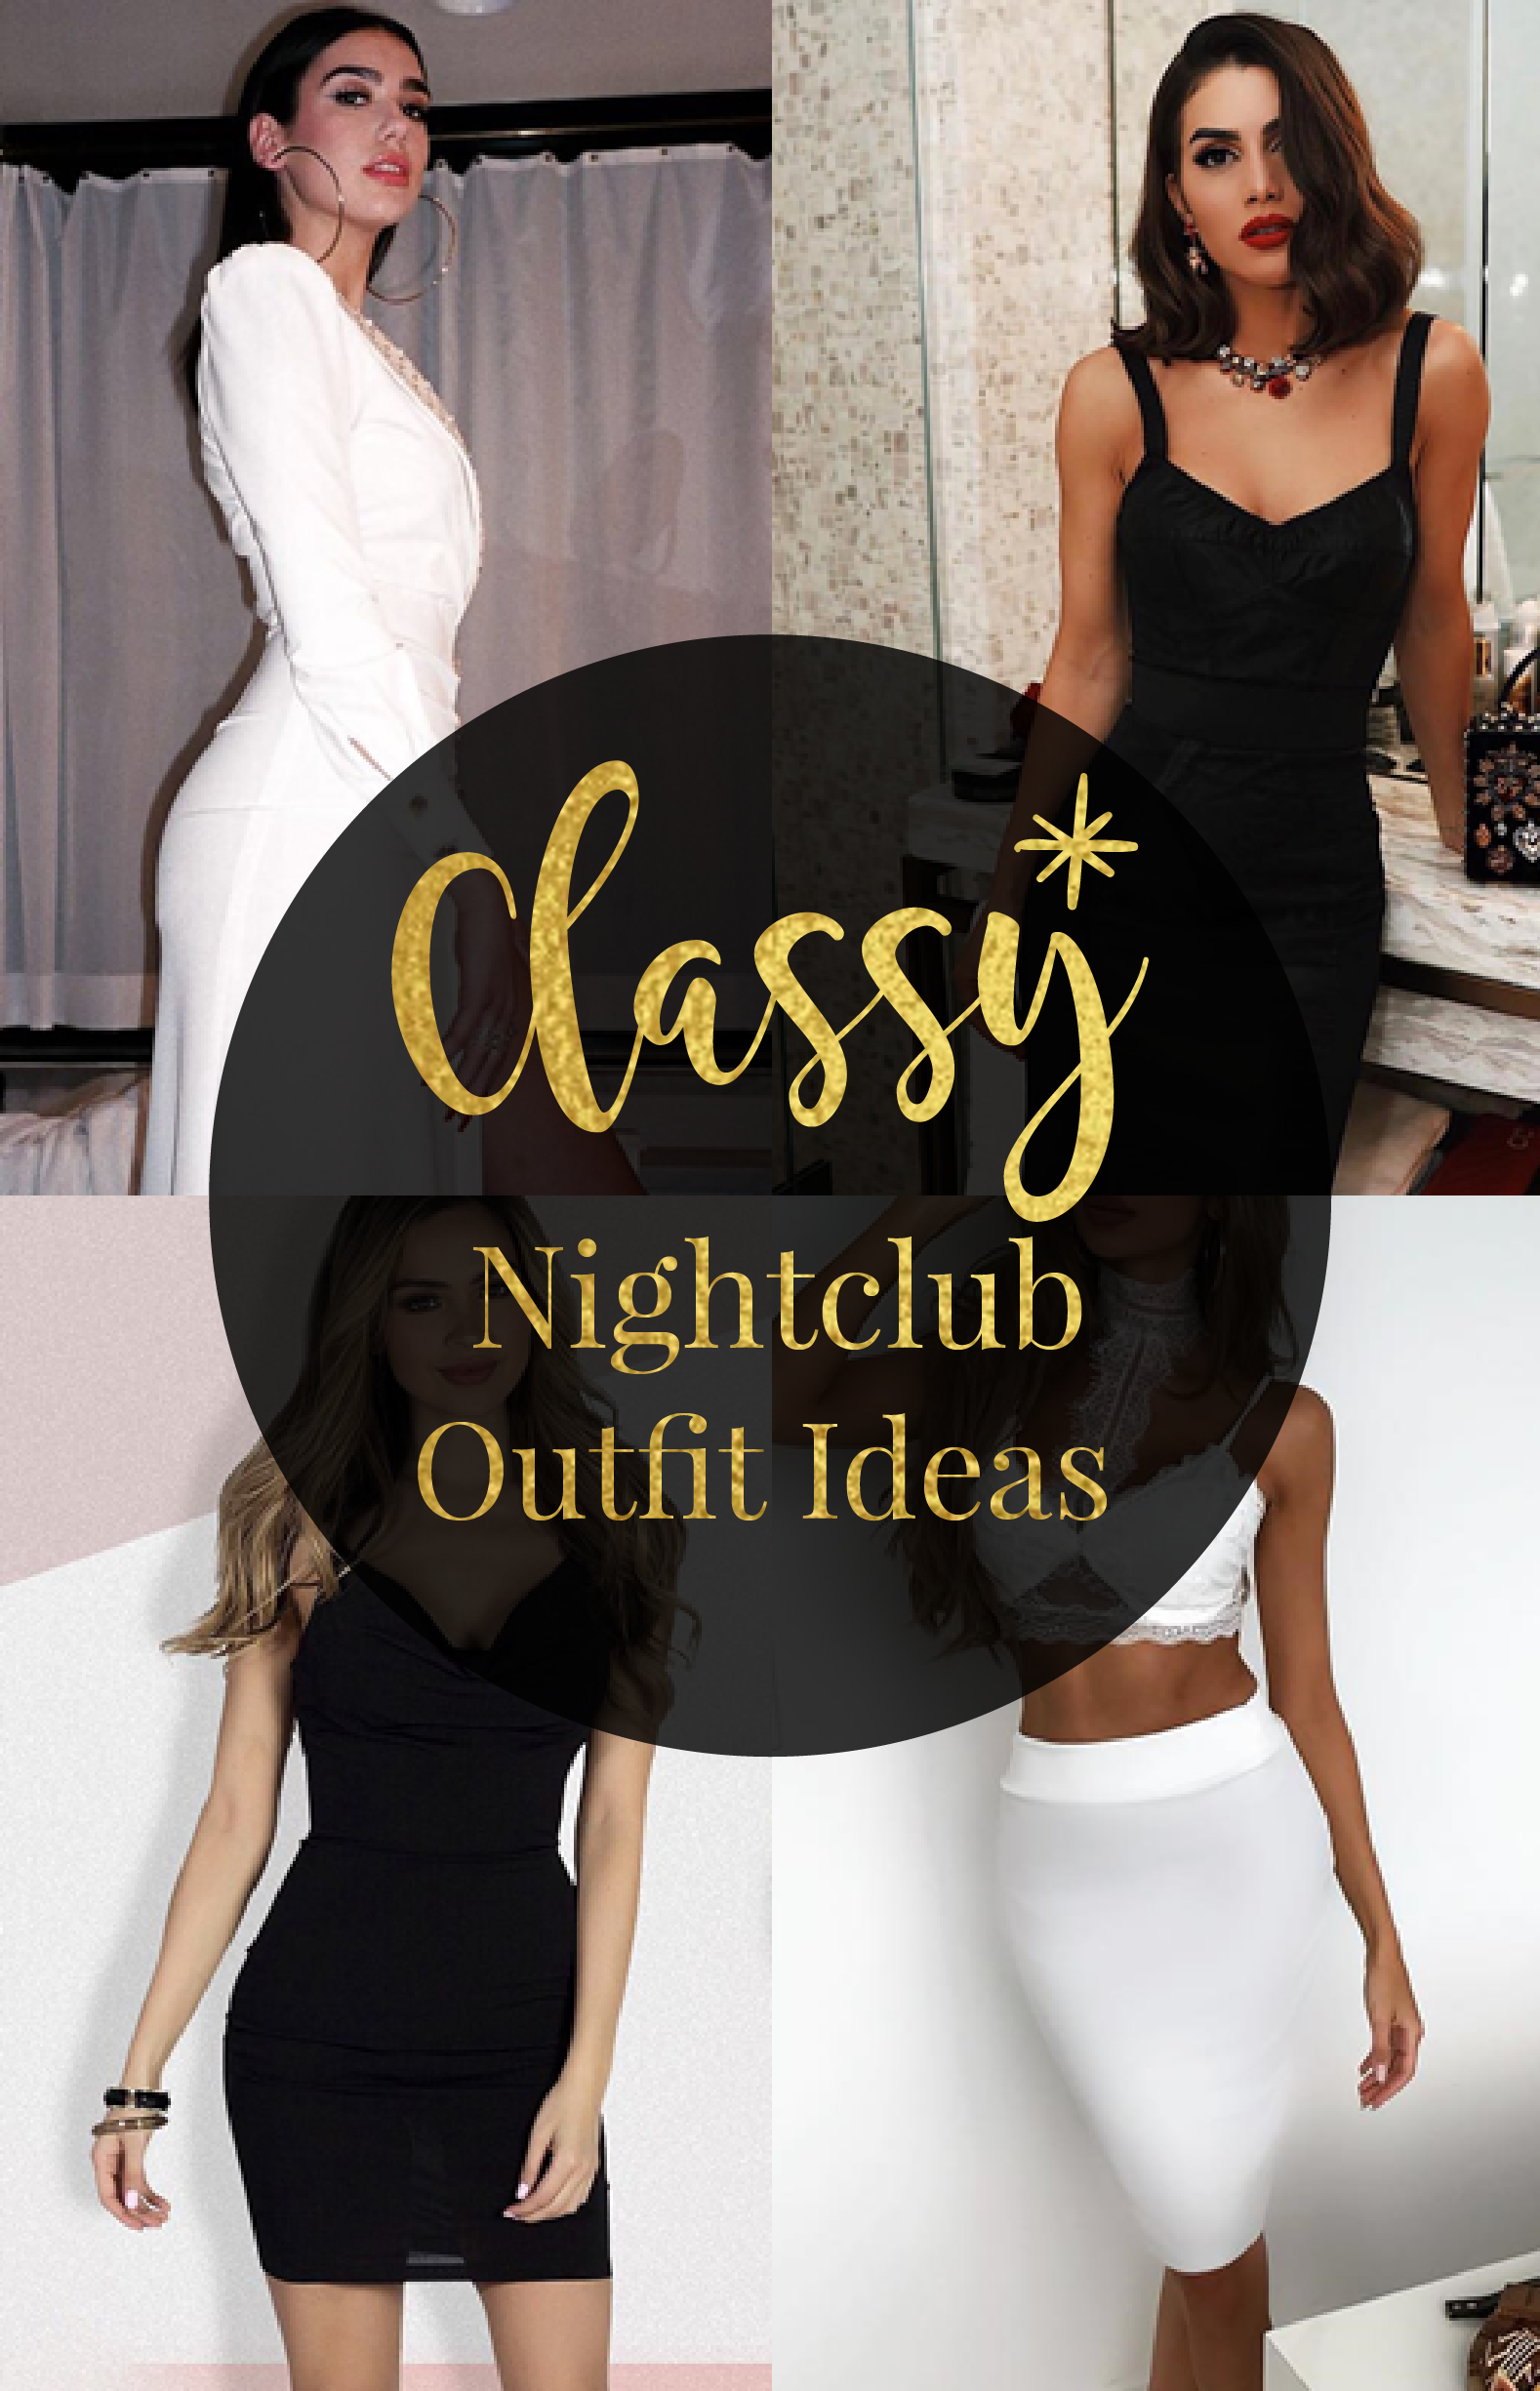 8519943447c Looking for stunning nightclub classy outfit ideas? - This hand-picked list  covers the stunning nightclub classy outfits 2018, including classy, jeans,  ...